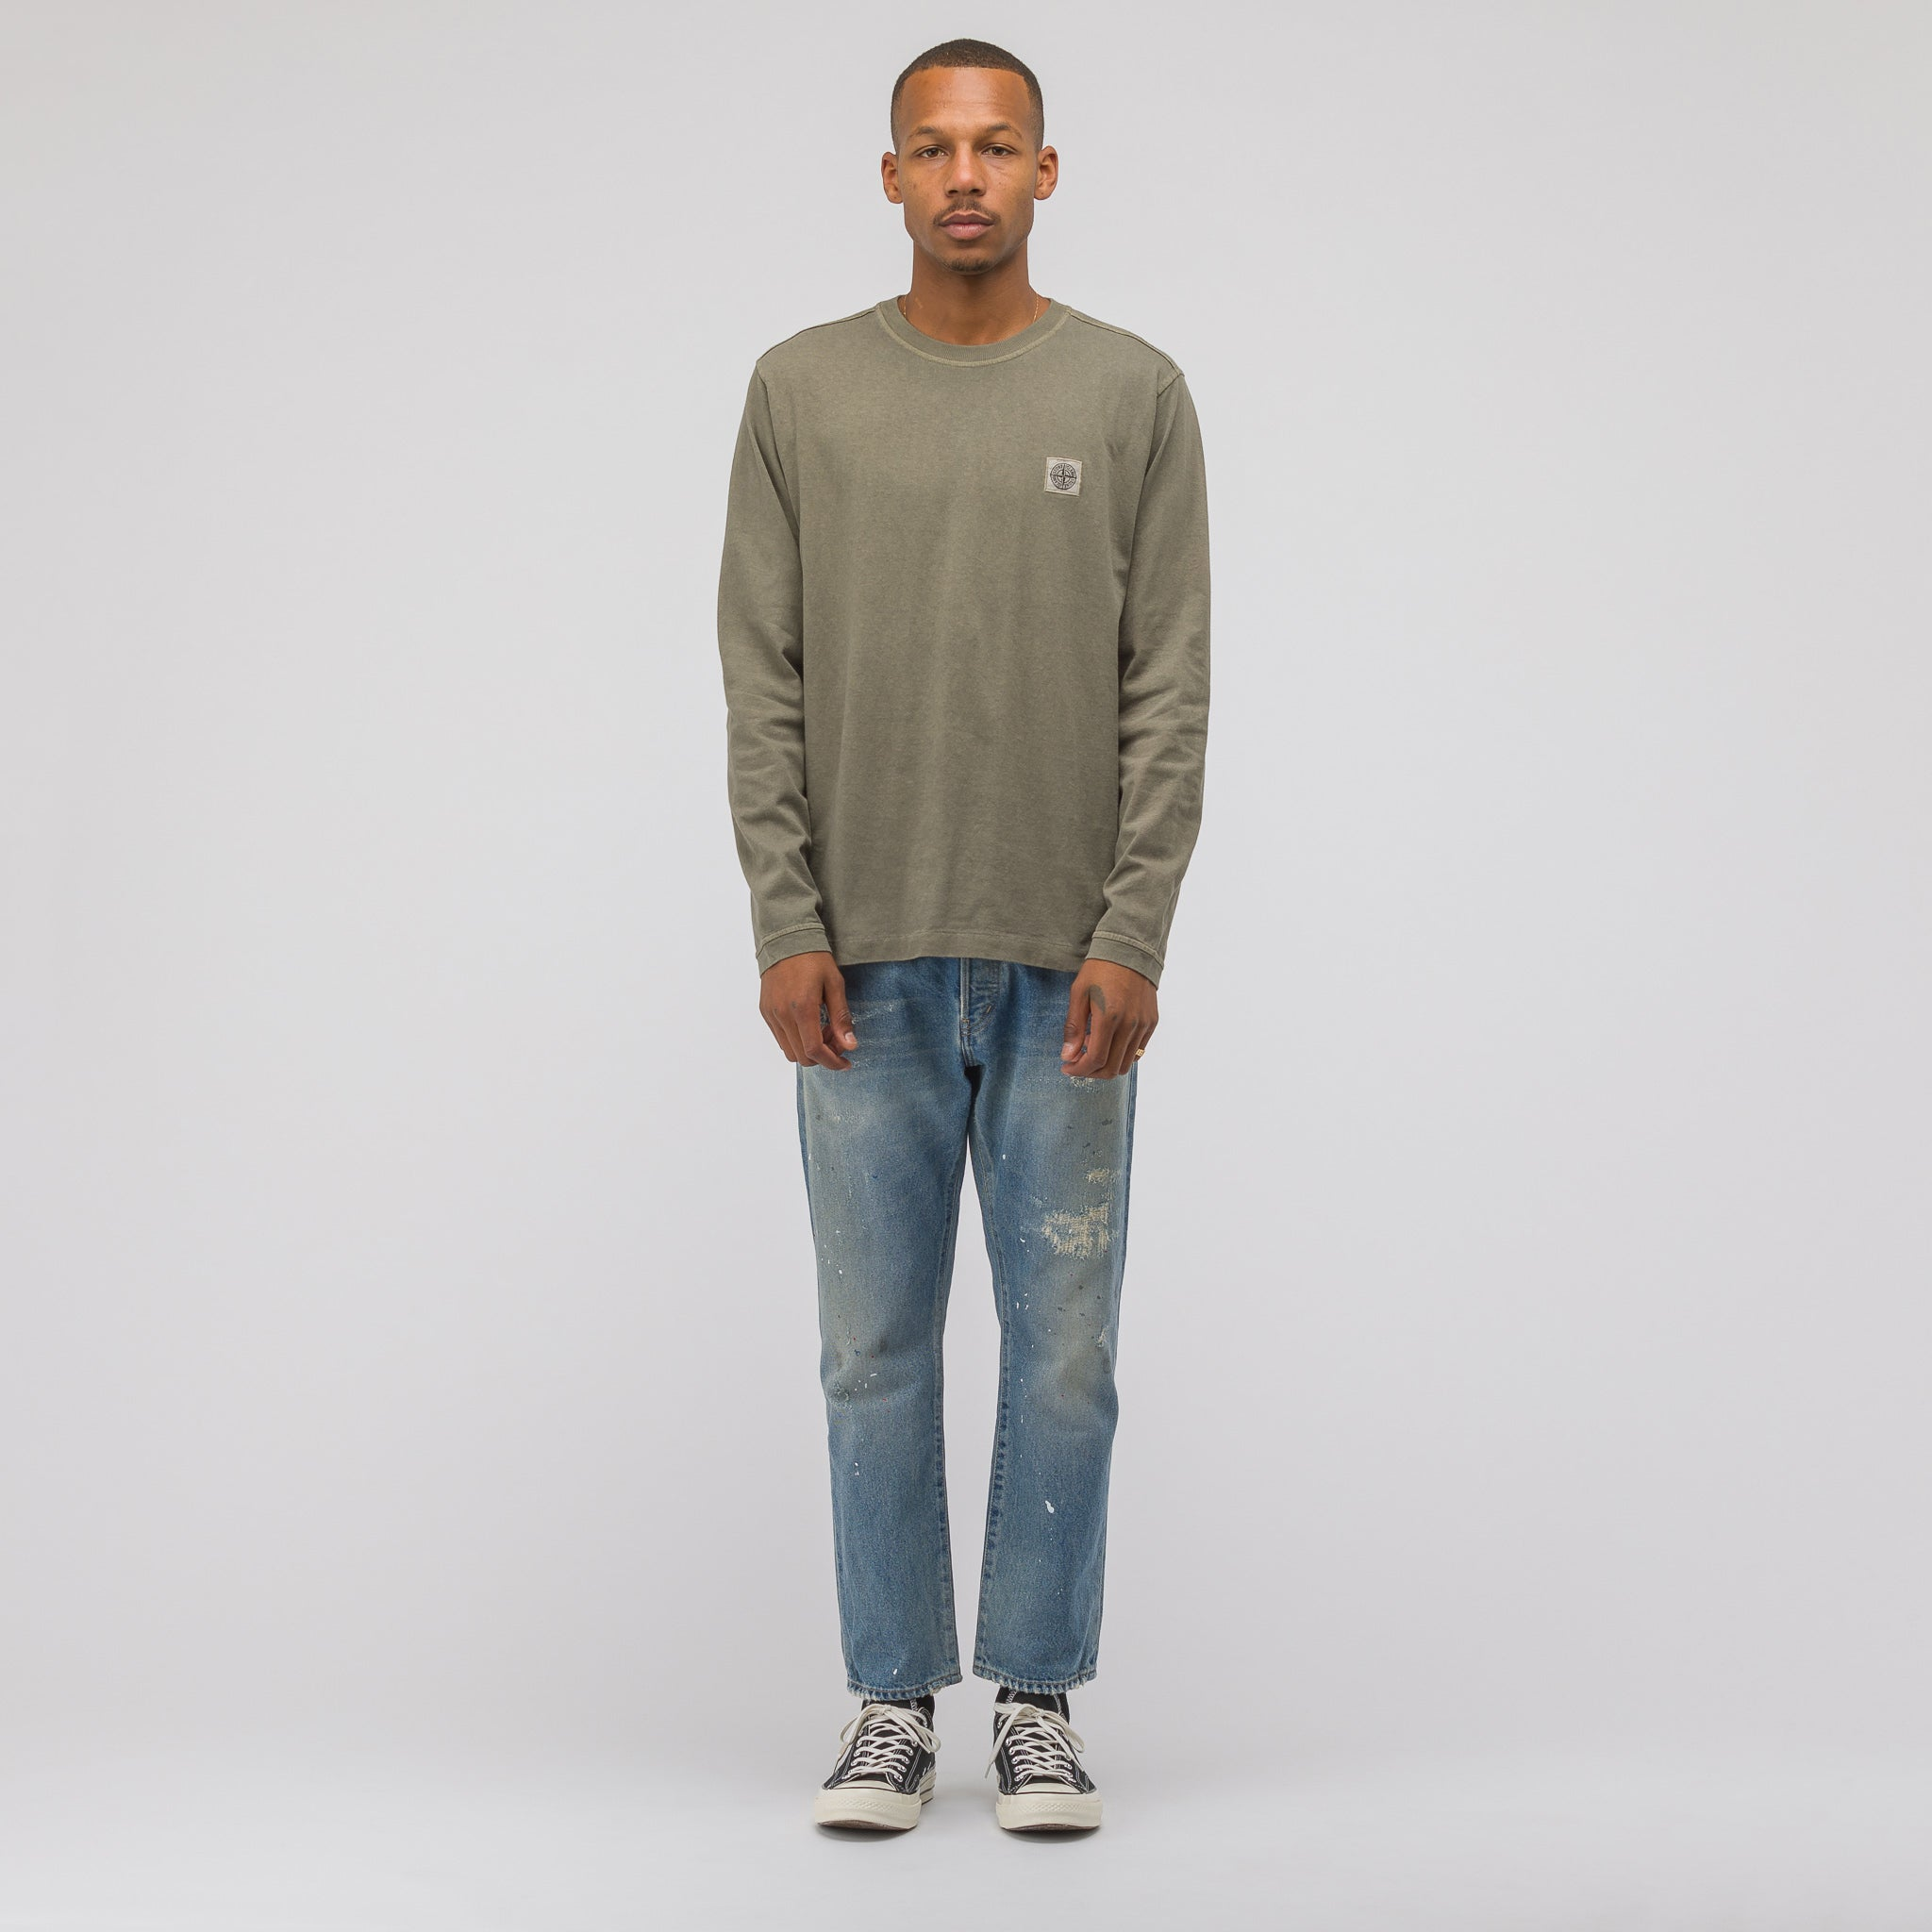 21442 Long Sleeve T-Shirt in Olive